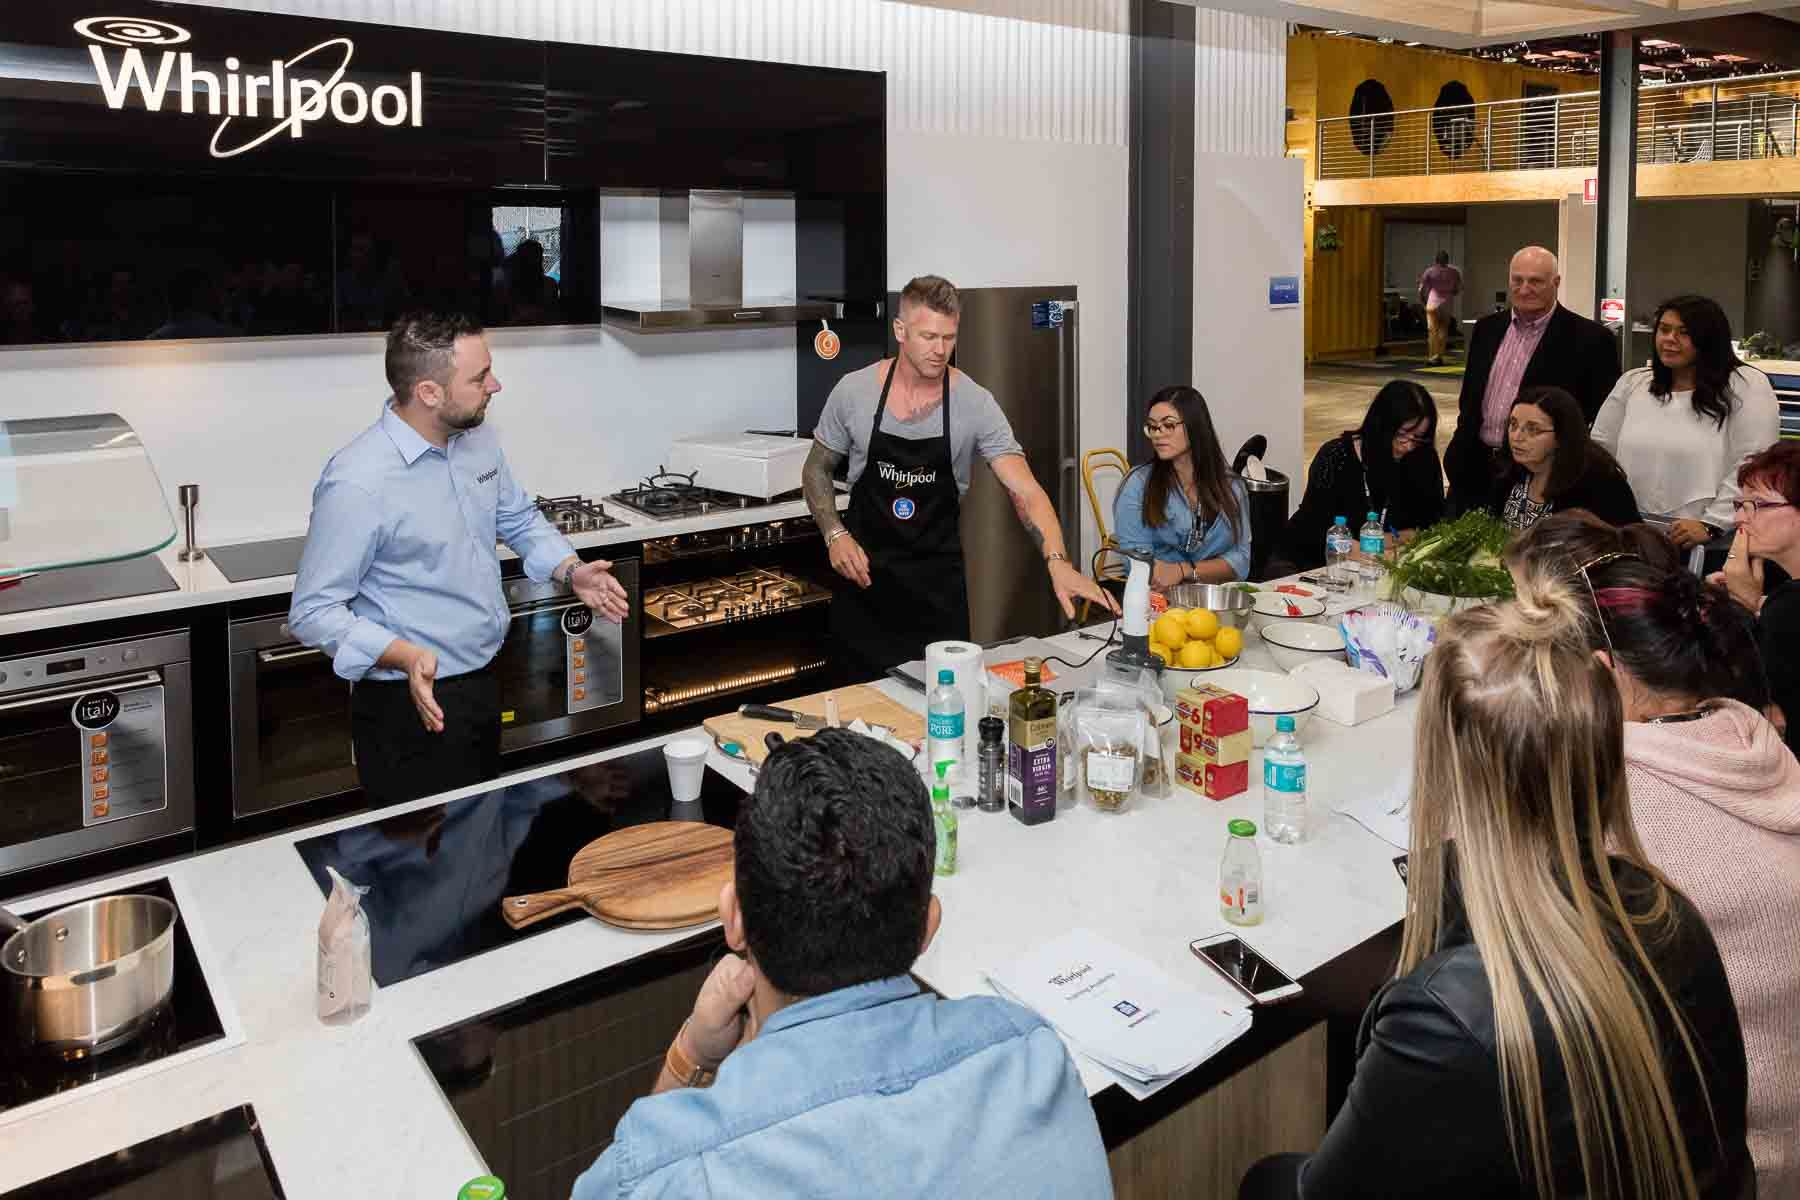 Business event for Whirlpool and The Good Guys - Appliance demonstration